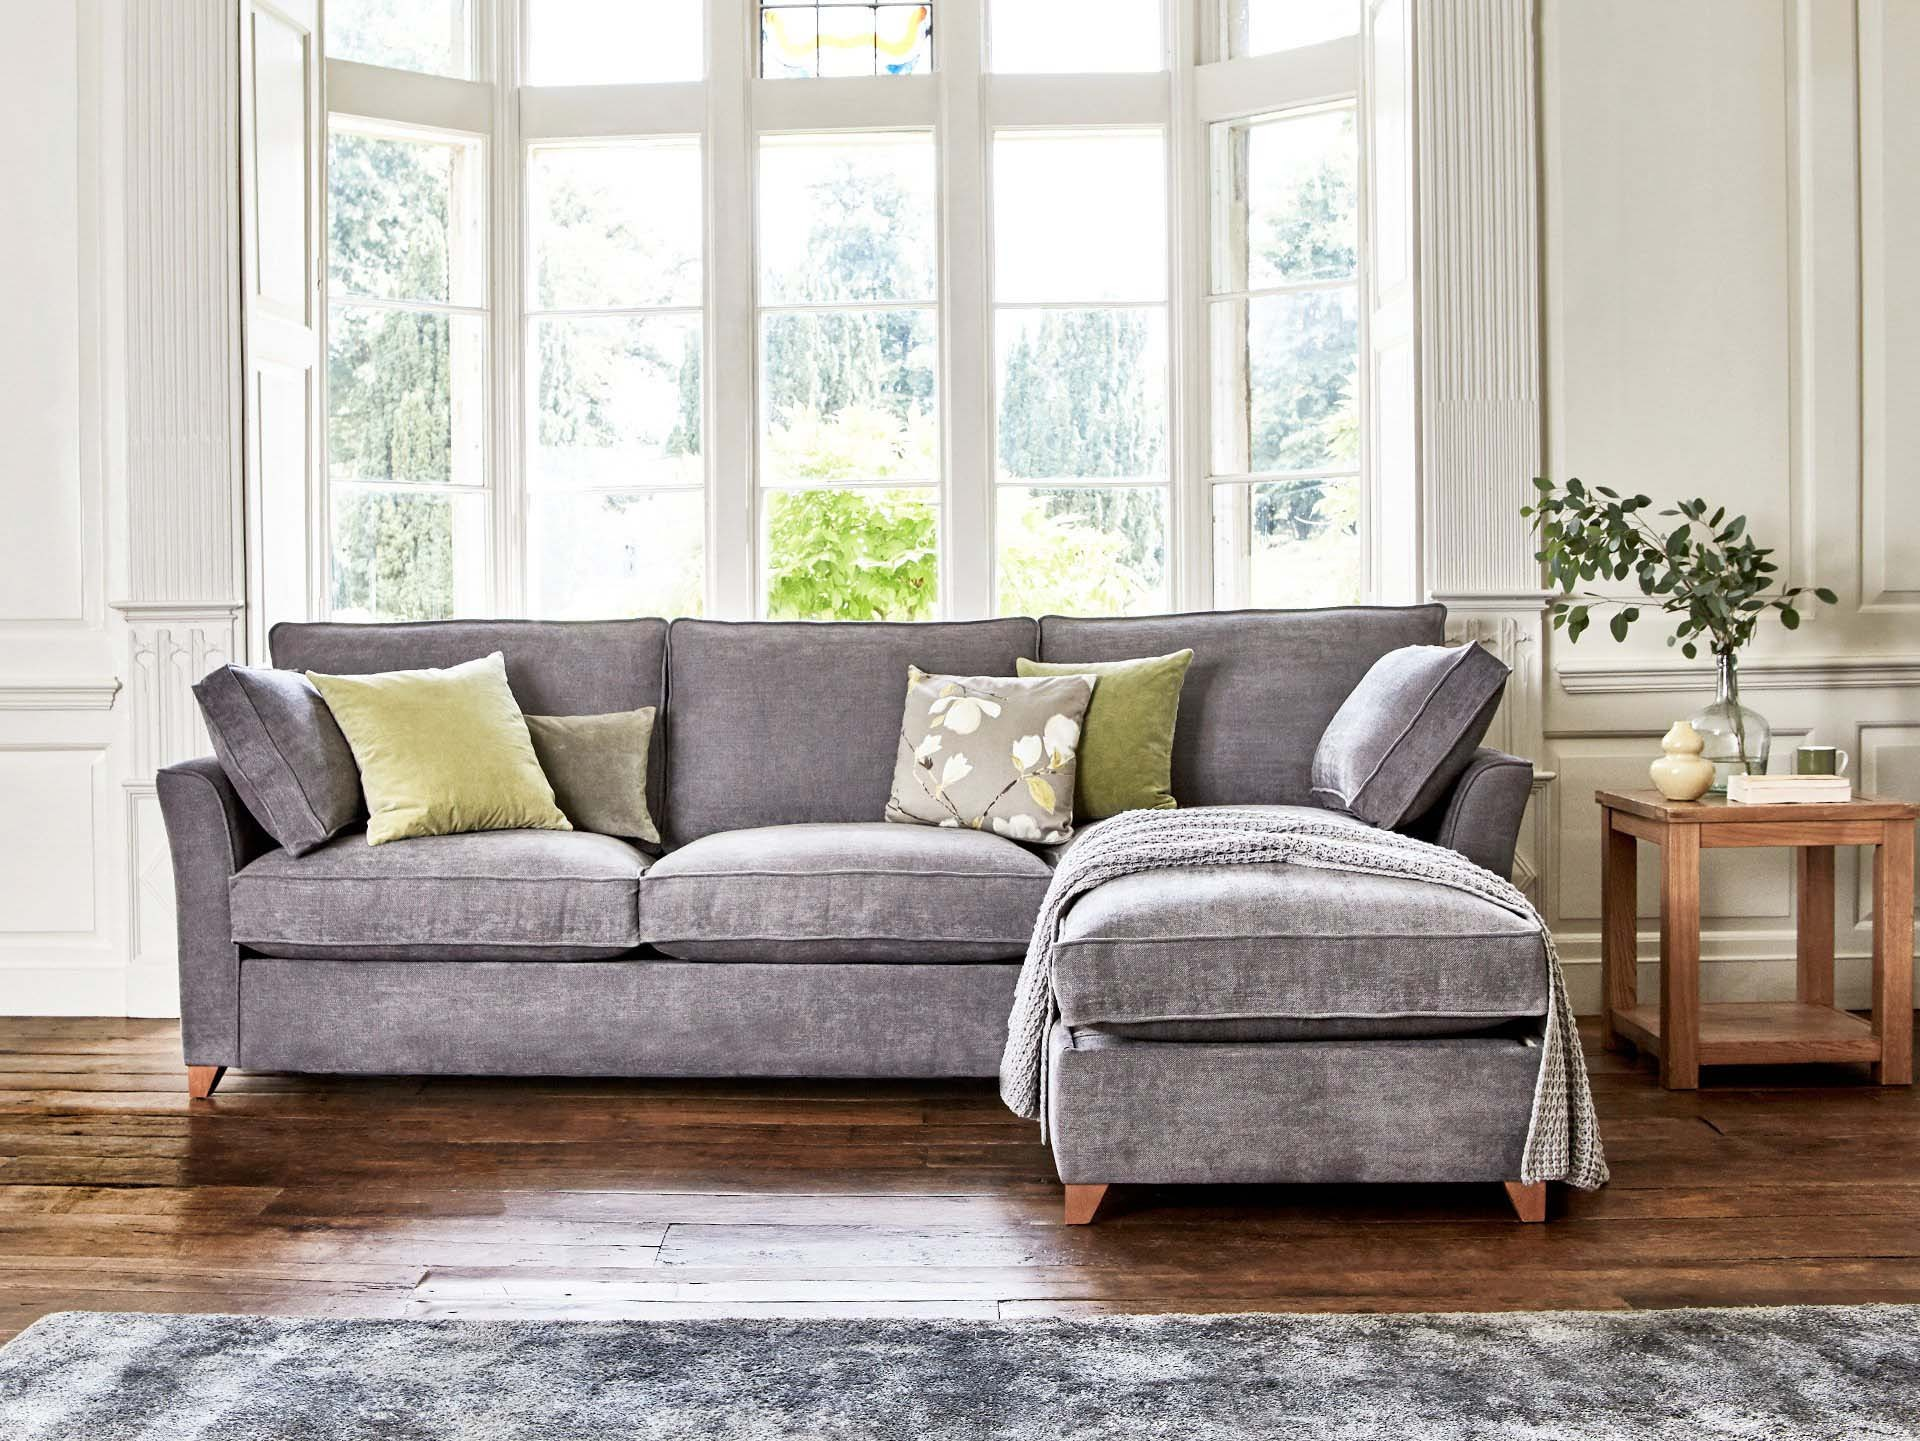 This is how I look in Stain Resistant Linen Cotton Pewter as a right side chaise with siliconized hollow fibre<br> or feather-wrapped foam seat cushions